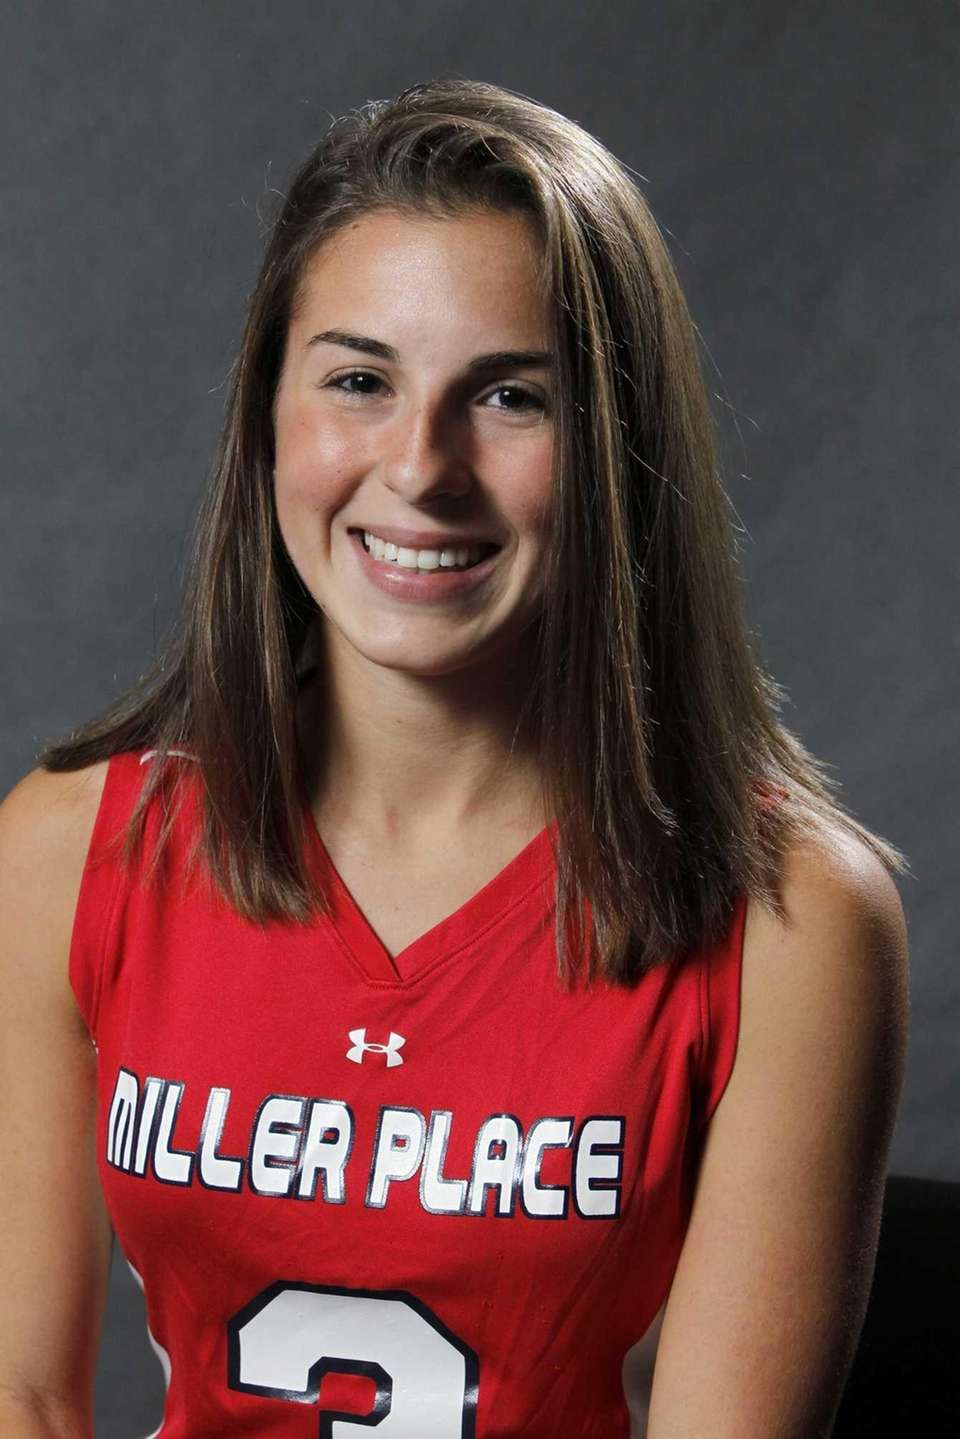 HEATHER ERCOLANO Miller Place, Midfielder, Senior The two-time